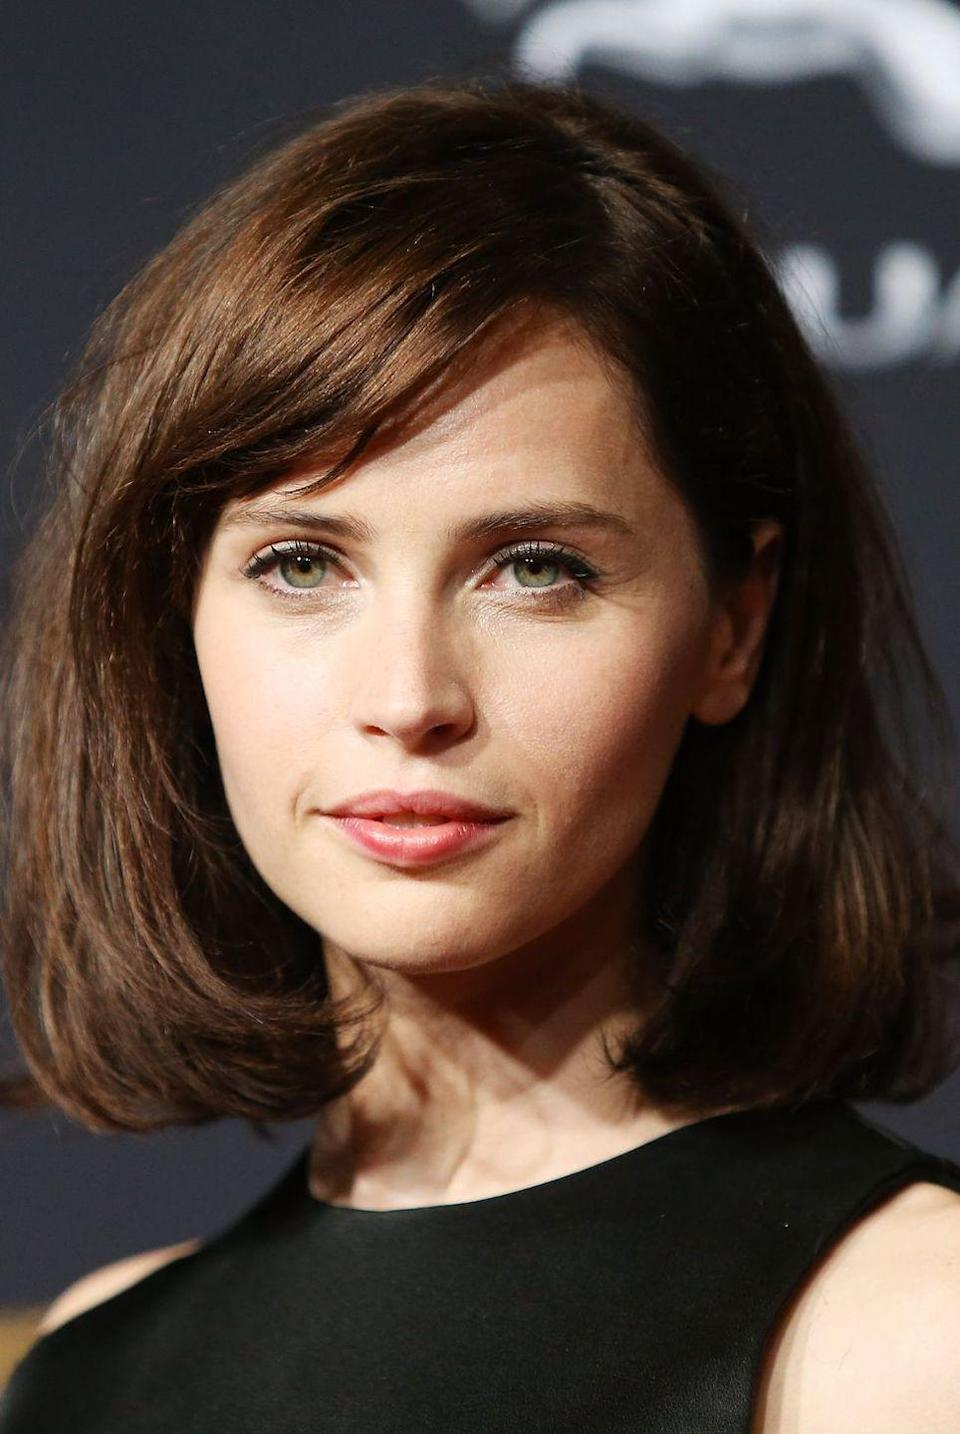 """<p>Felicity Jones, who you might know as Jyn from <em>Rogue One</em>, <a href=""""https://www.mirror.co.uk/tv/tv-news/felicity-jones-play-young-queen-3912734"""" rel=""""nofollow noopener"""" target=""""_blank"""" data-ylk=""""slk:reportedly auditioned"""" class=""""link rapid-noclick-resp"""">reportedly auditioned</a> to play Queen Elizabeth in the series, according to the <em>Mirror</em>.</p>"""